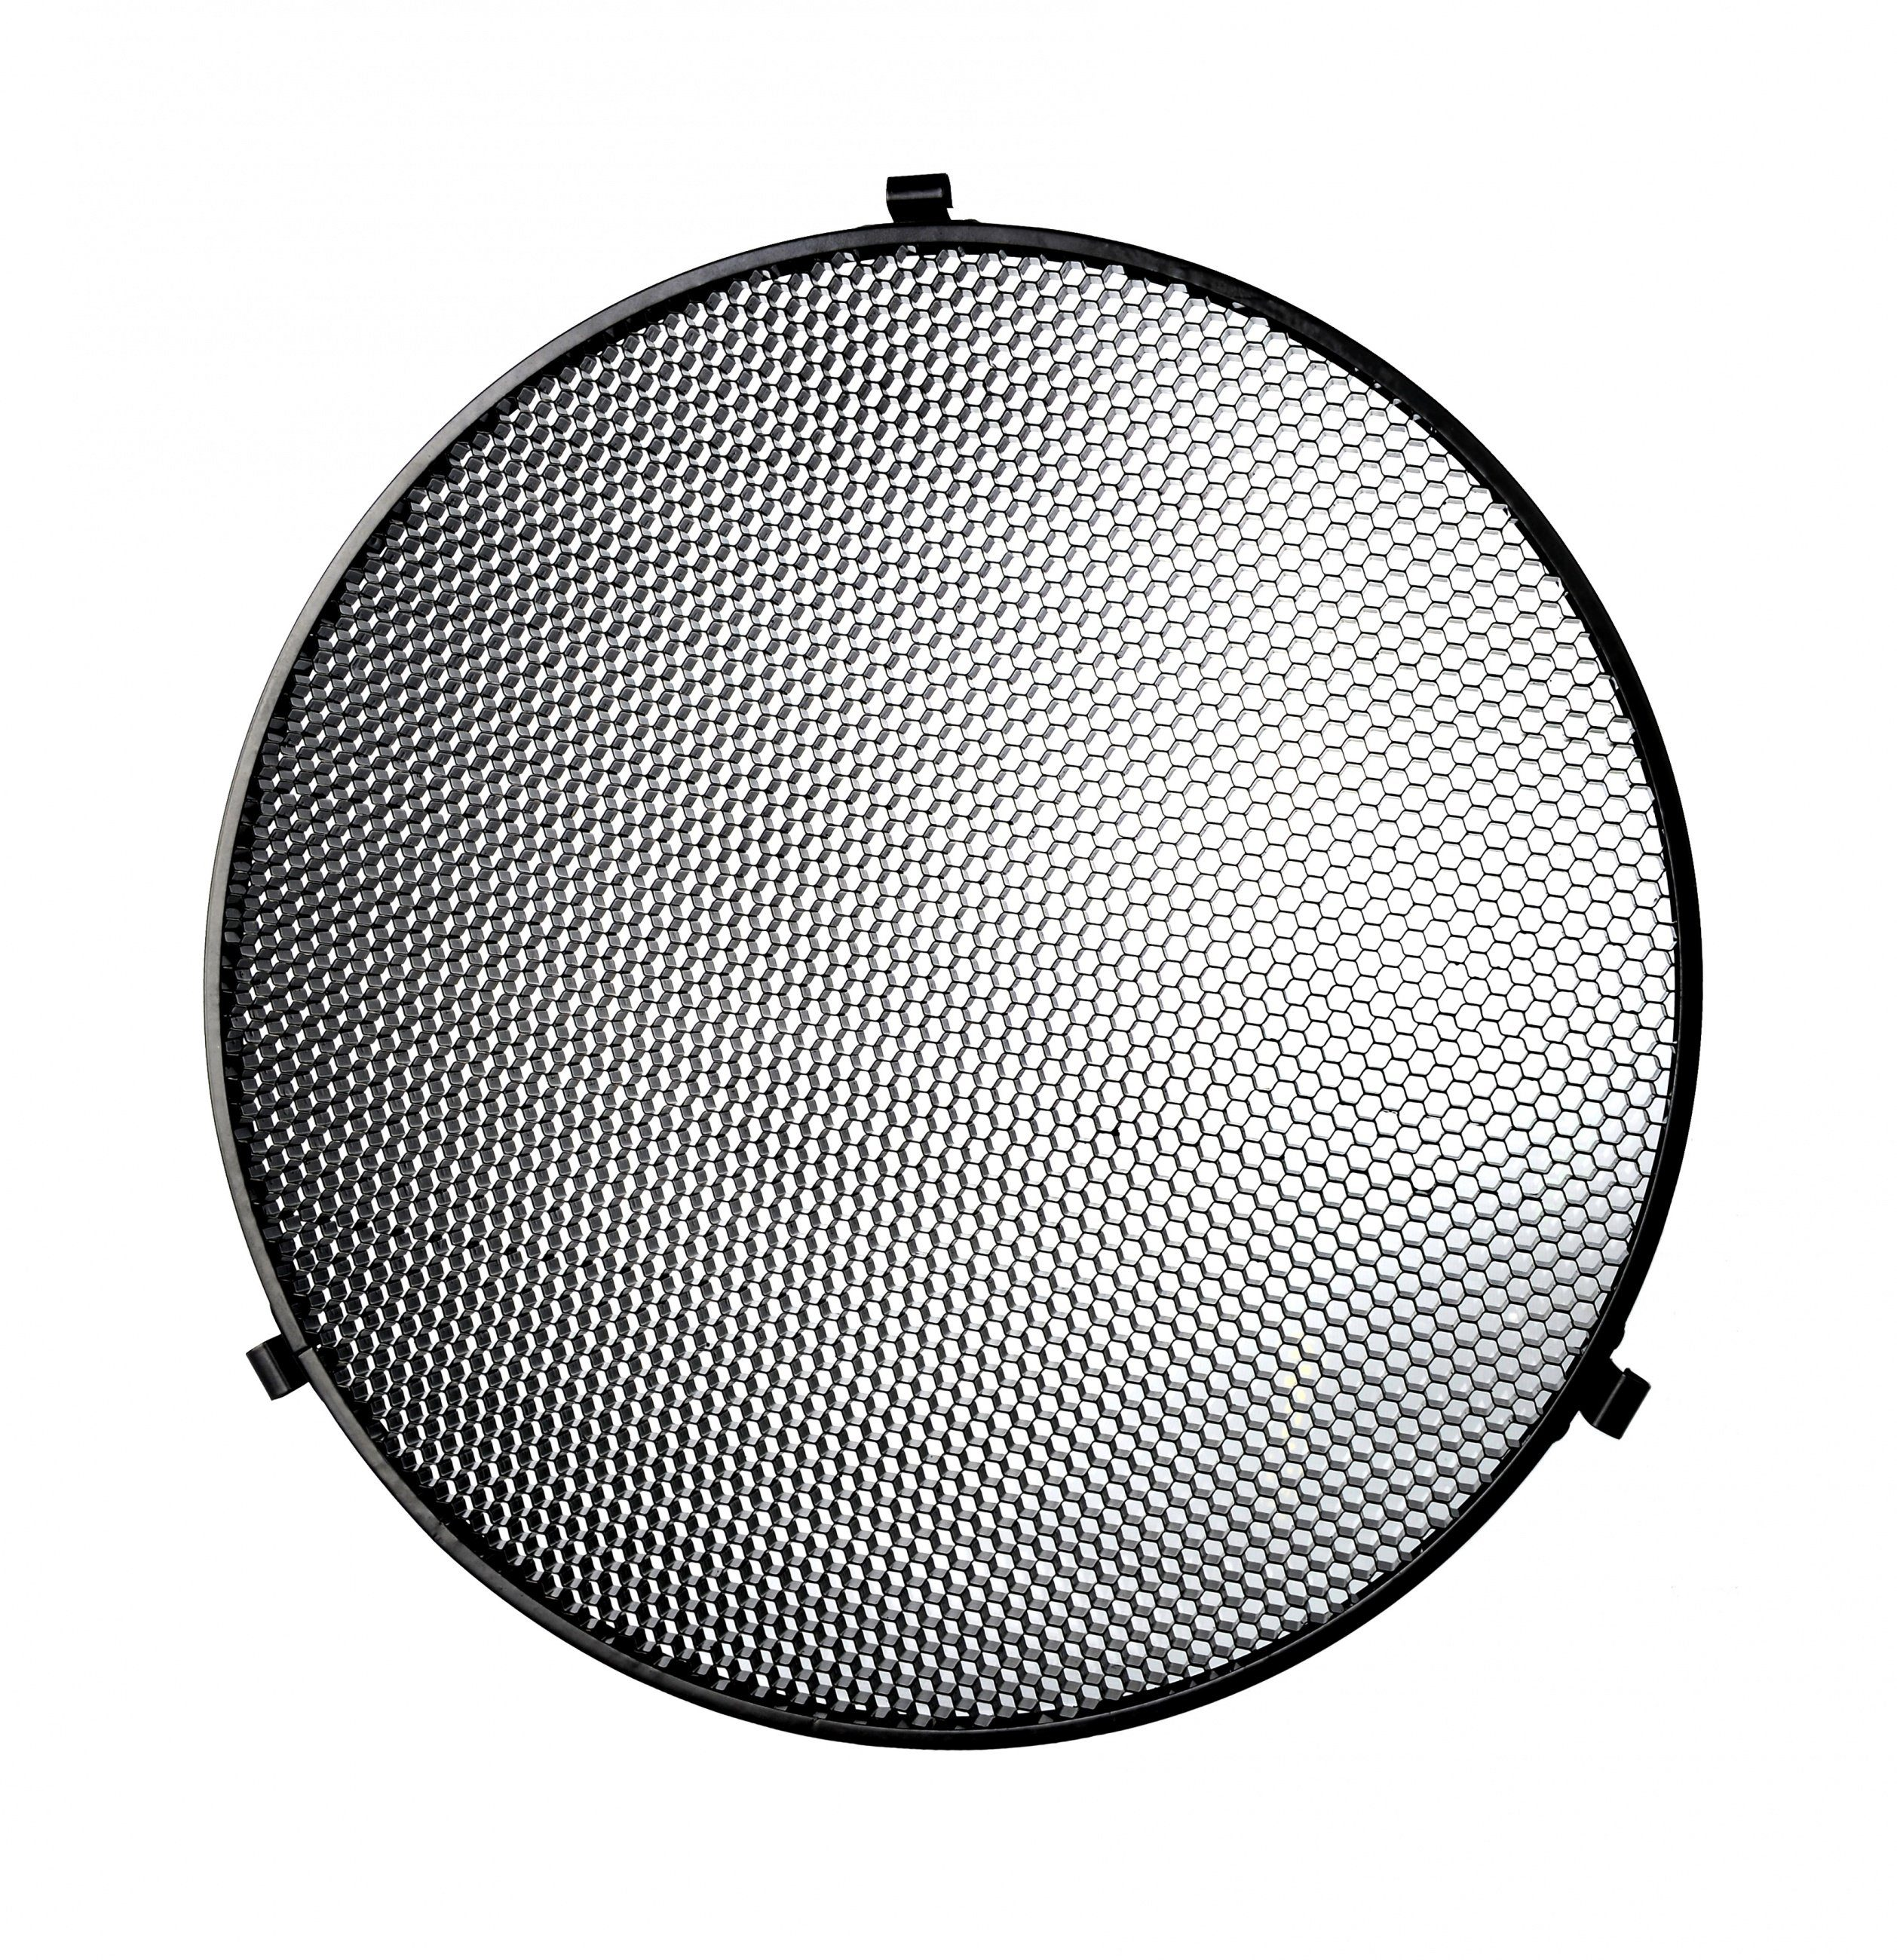 Bresser Fotostudio »M-14 SUPER SOFT Wabe für 40 cm Beauty Dish«